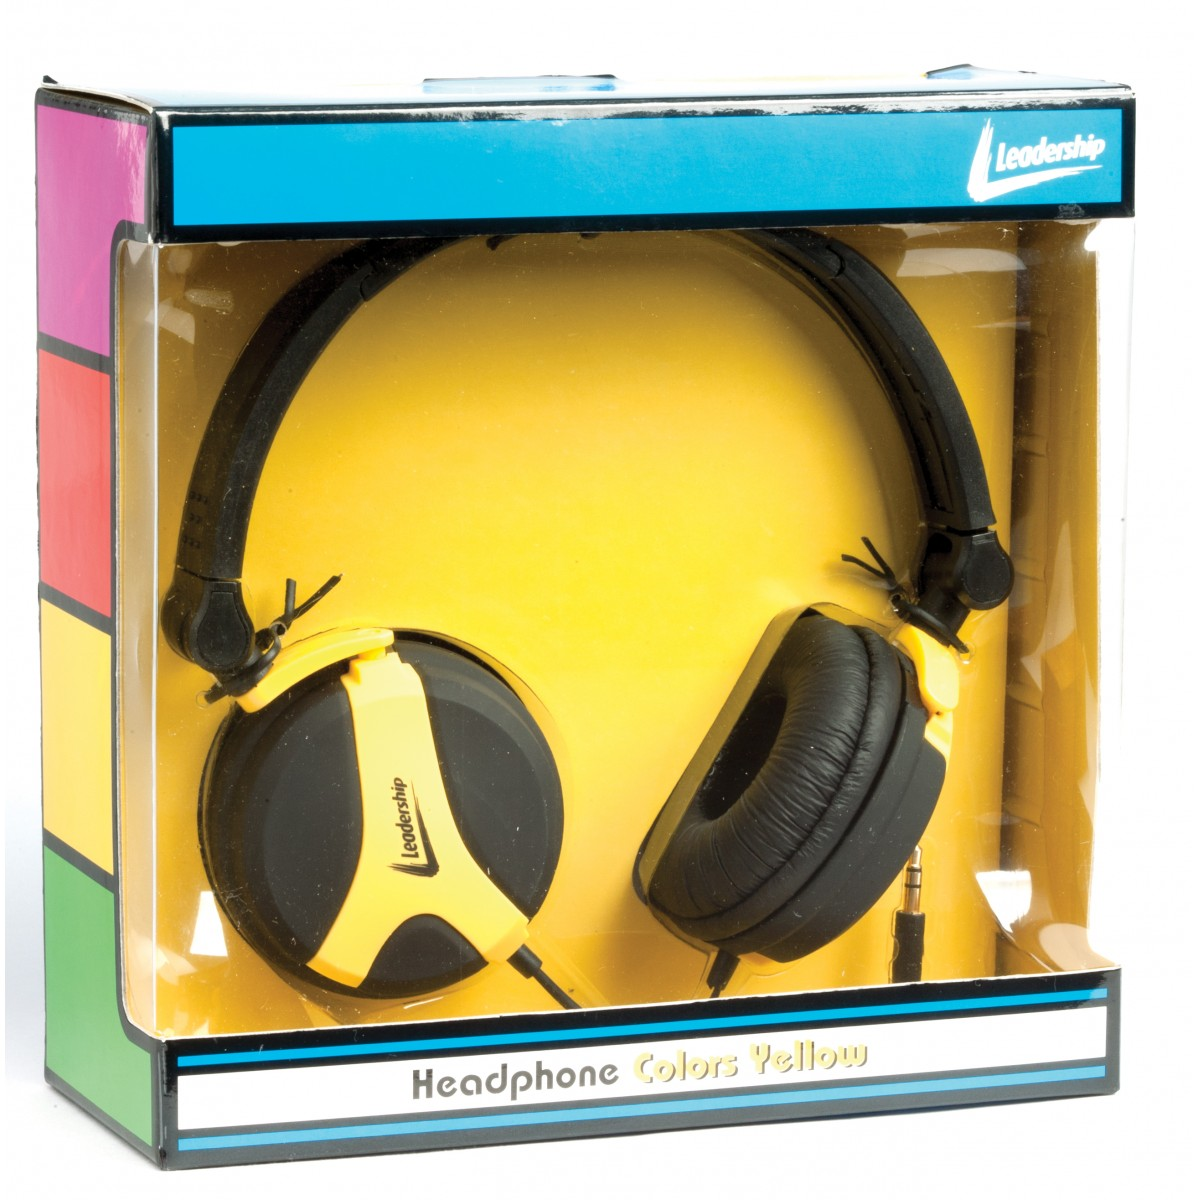 Headphone colors yellow 2774 - Leadership